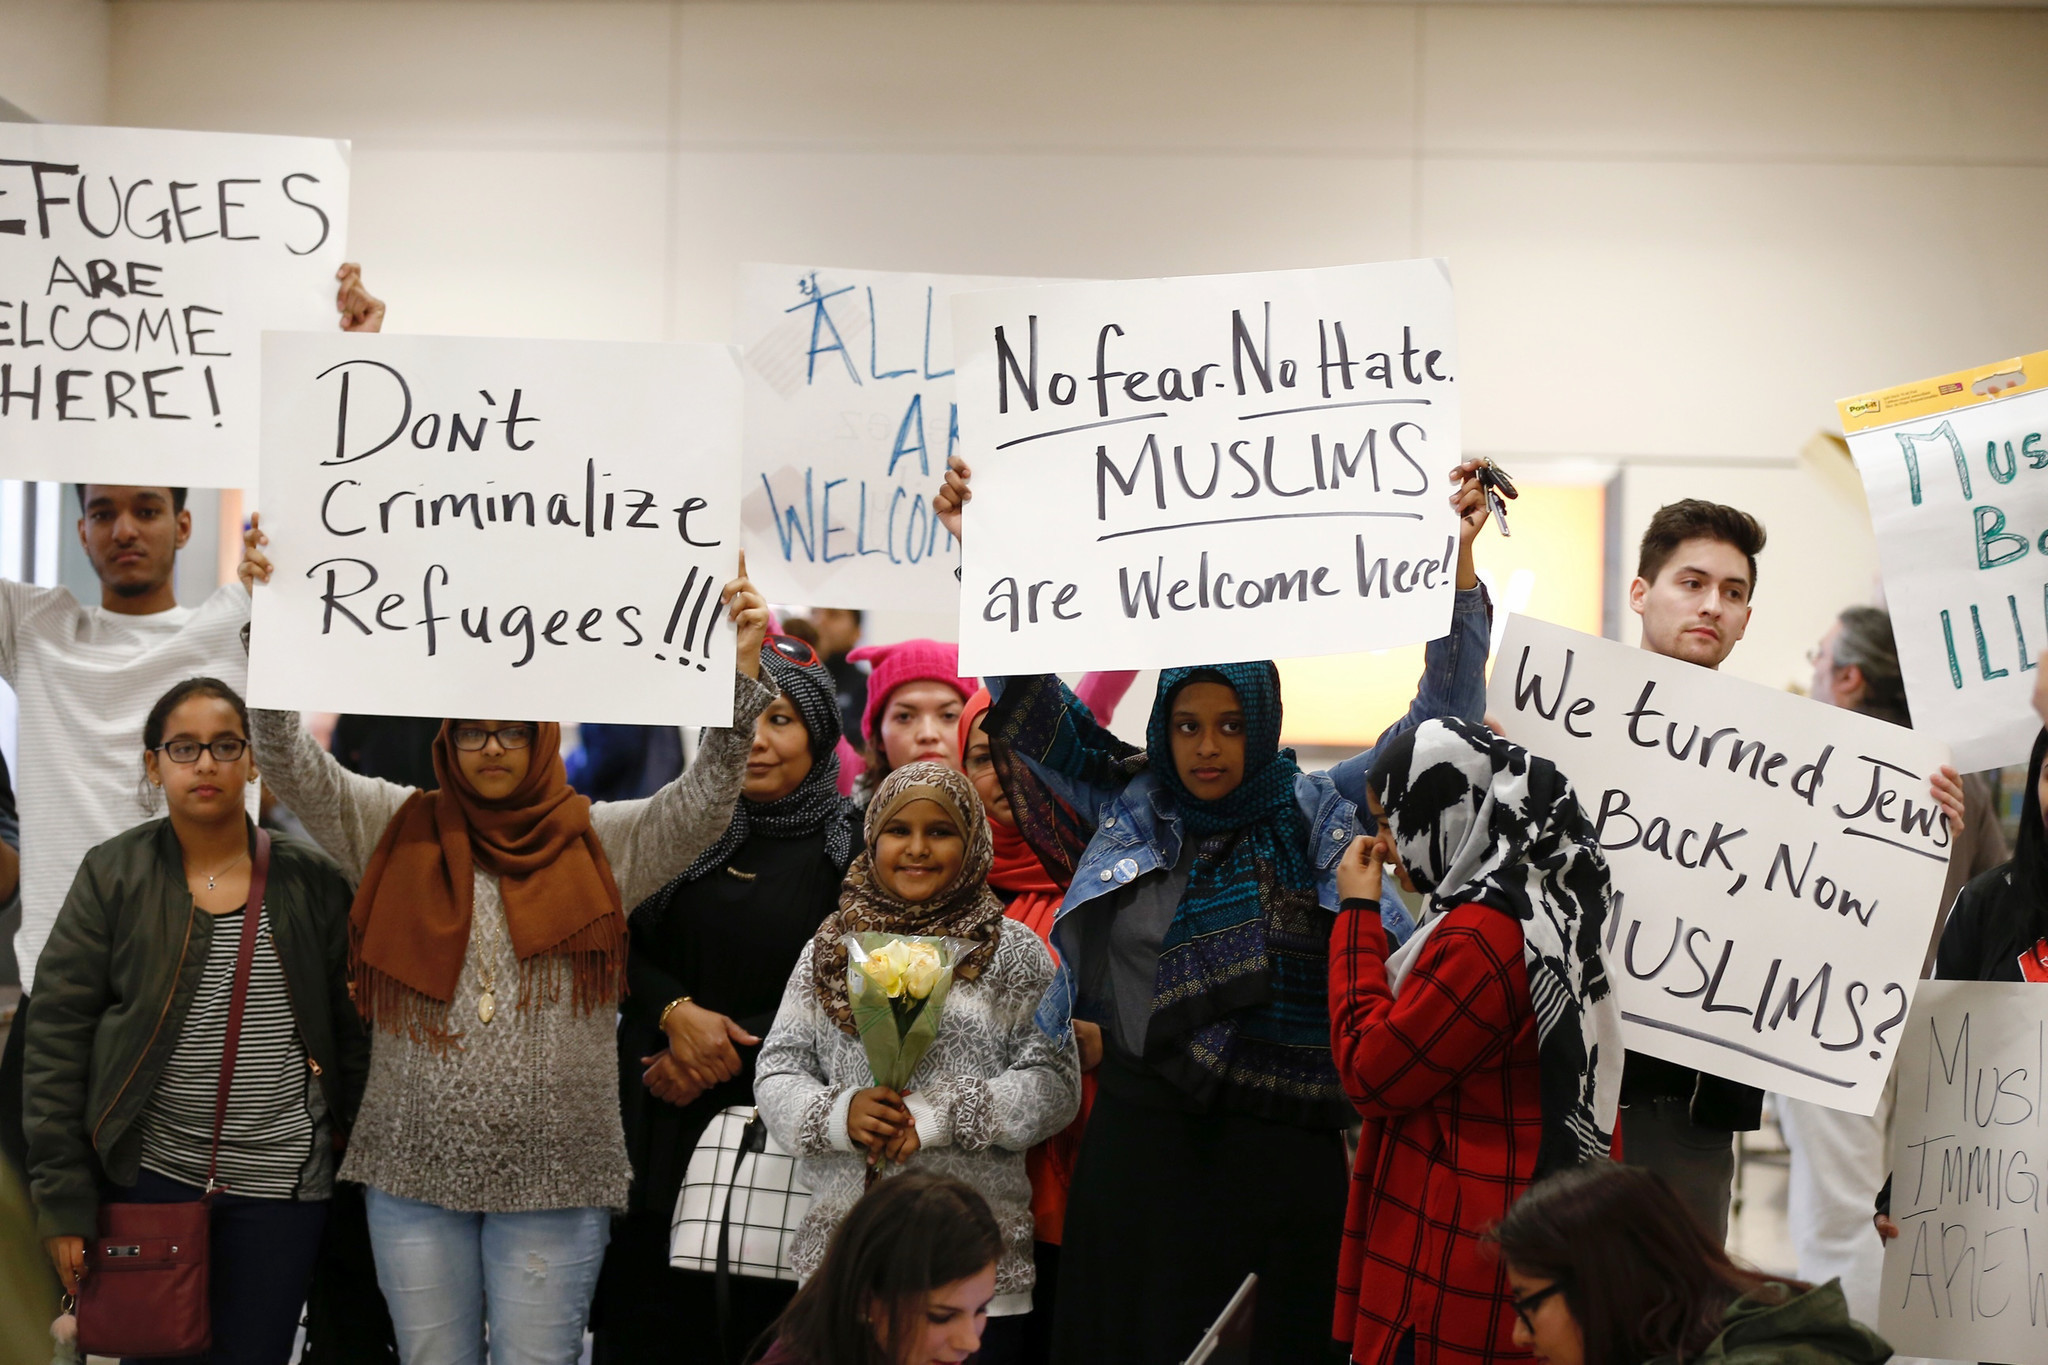 Protesters at Dallas-Forth Worth International Airport demonstrate on Jan. 28 against President Trump's executive order restricting refugees and immigrants from seven Muslim-majority countries. (Brandon Wade / Associated Press)